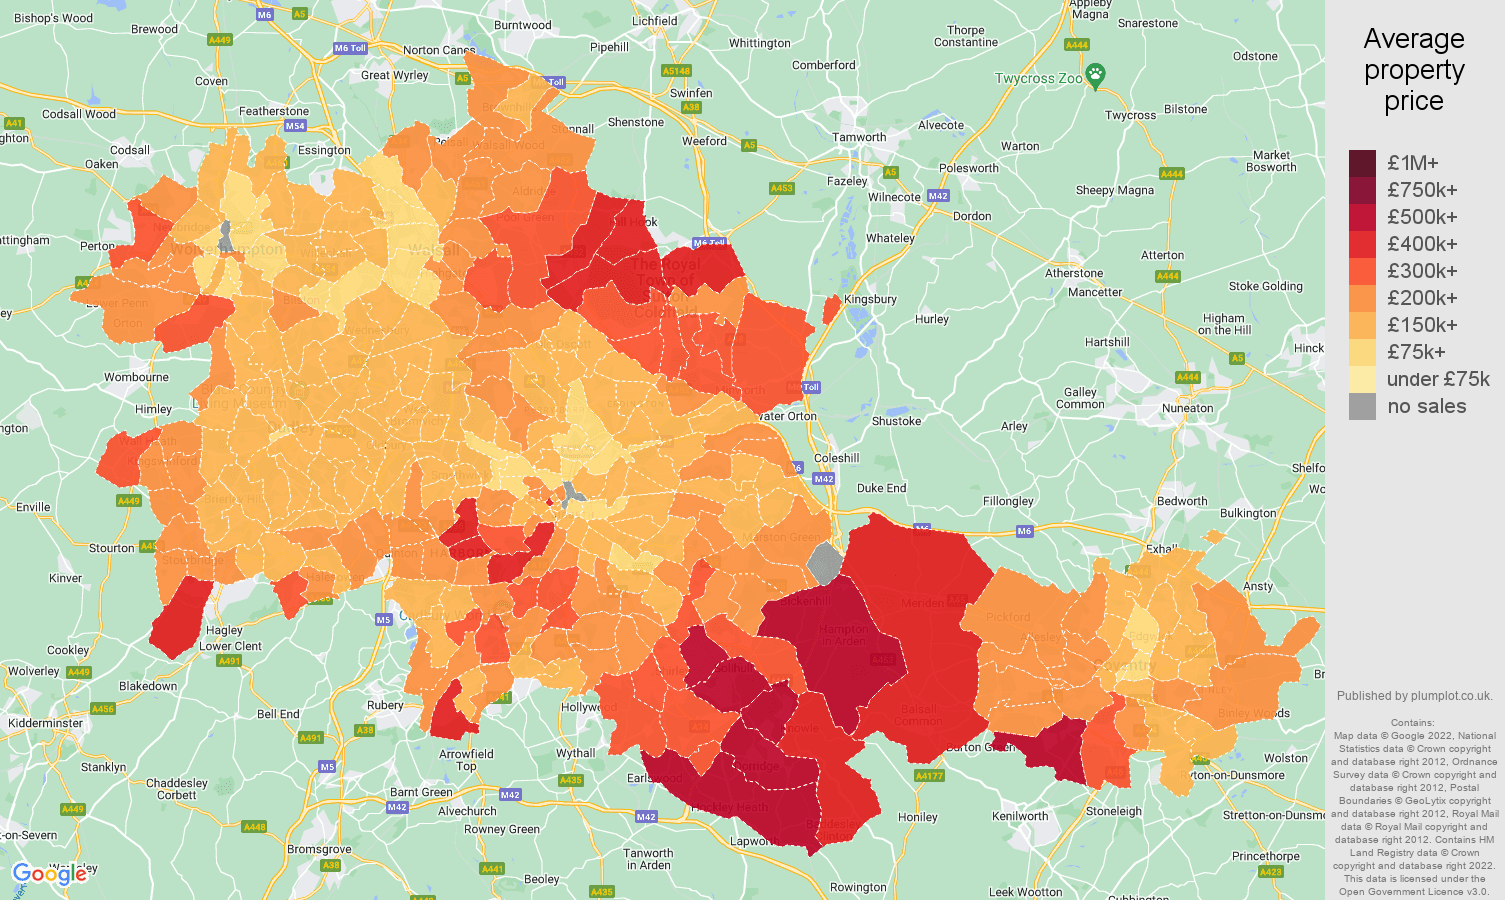 West Midlands county house prices map